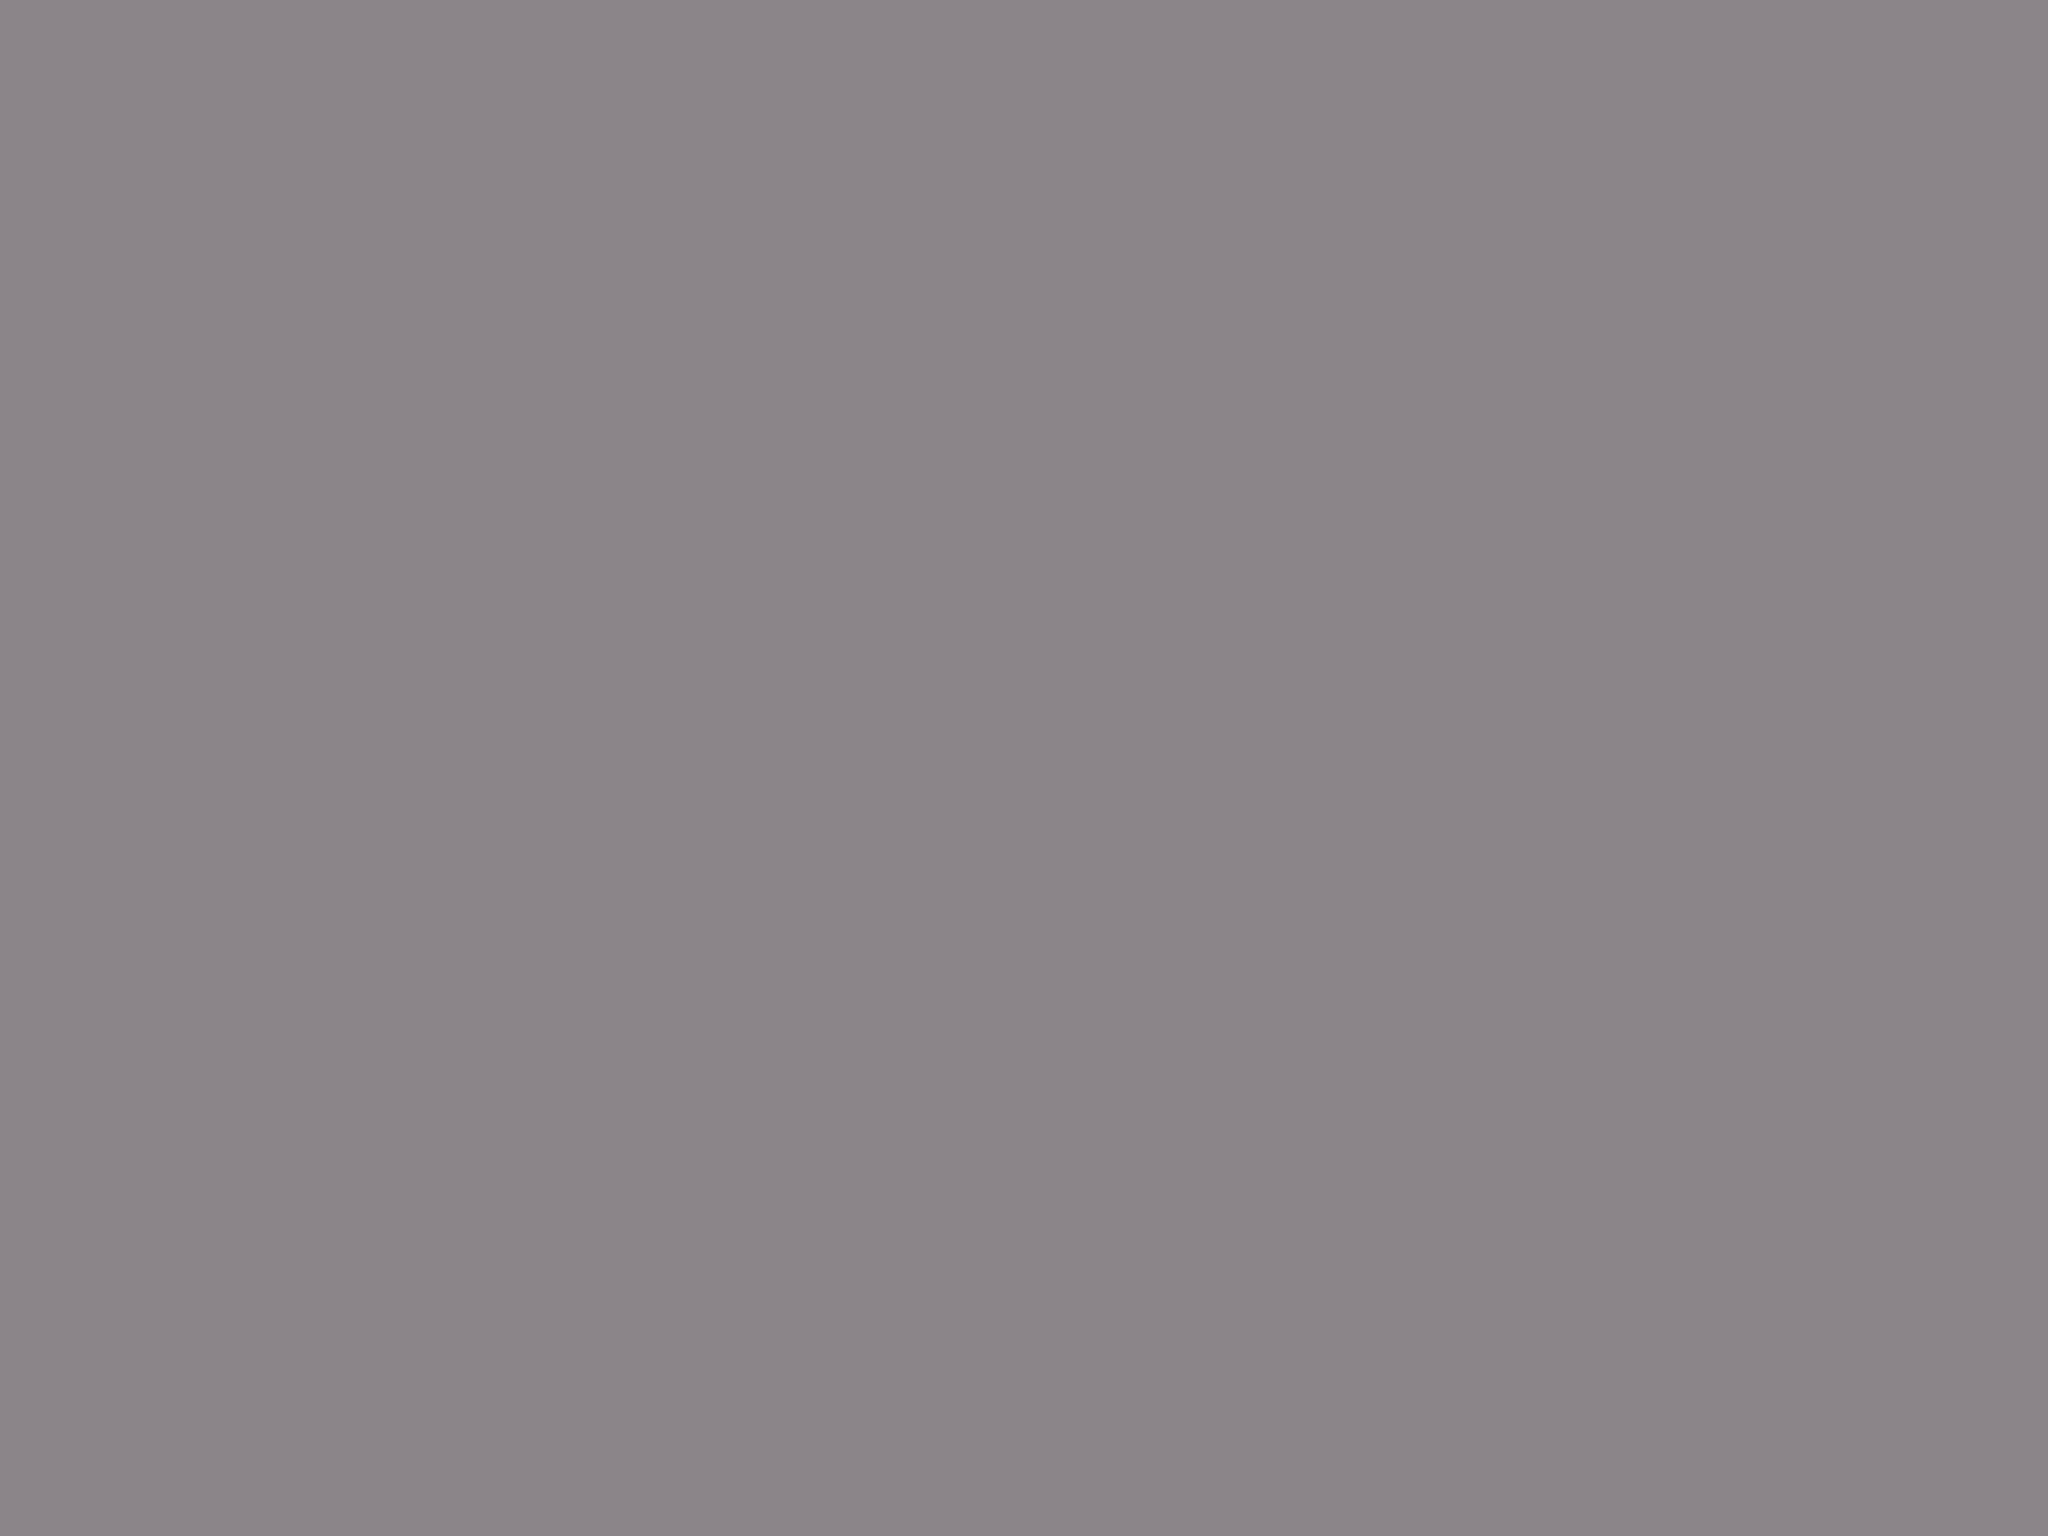 2048x1536 Taupe Gray Solid Color Background